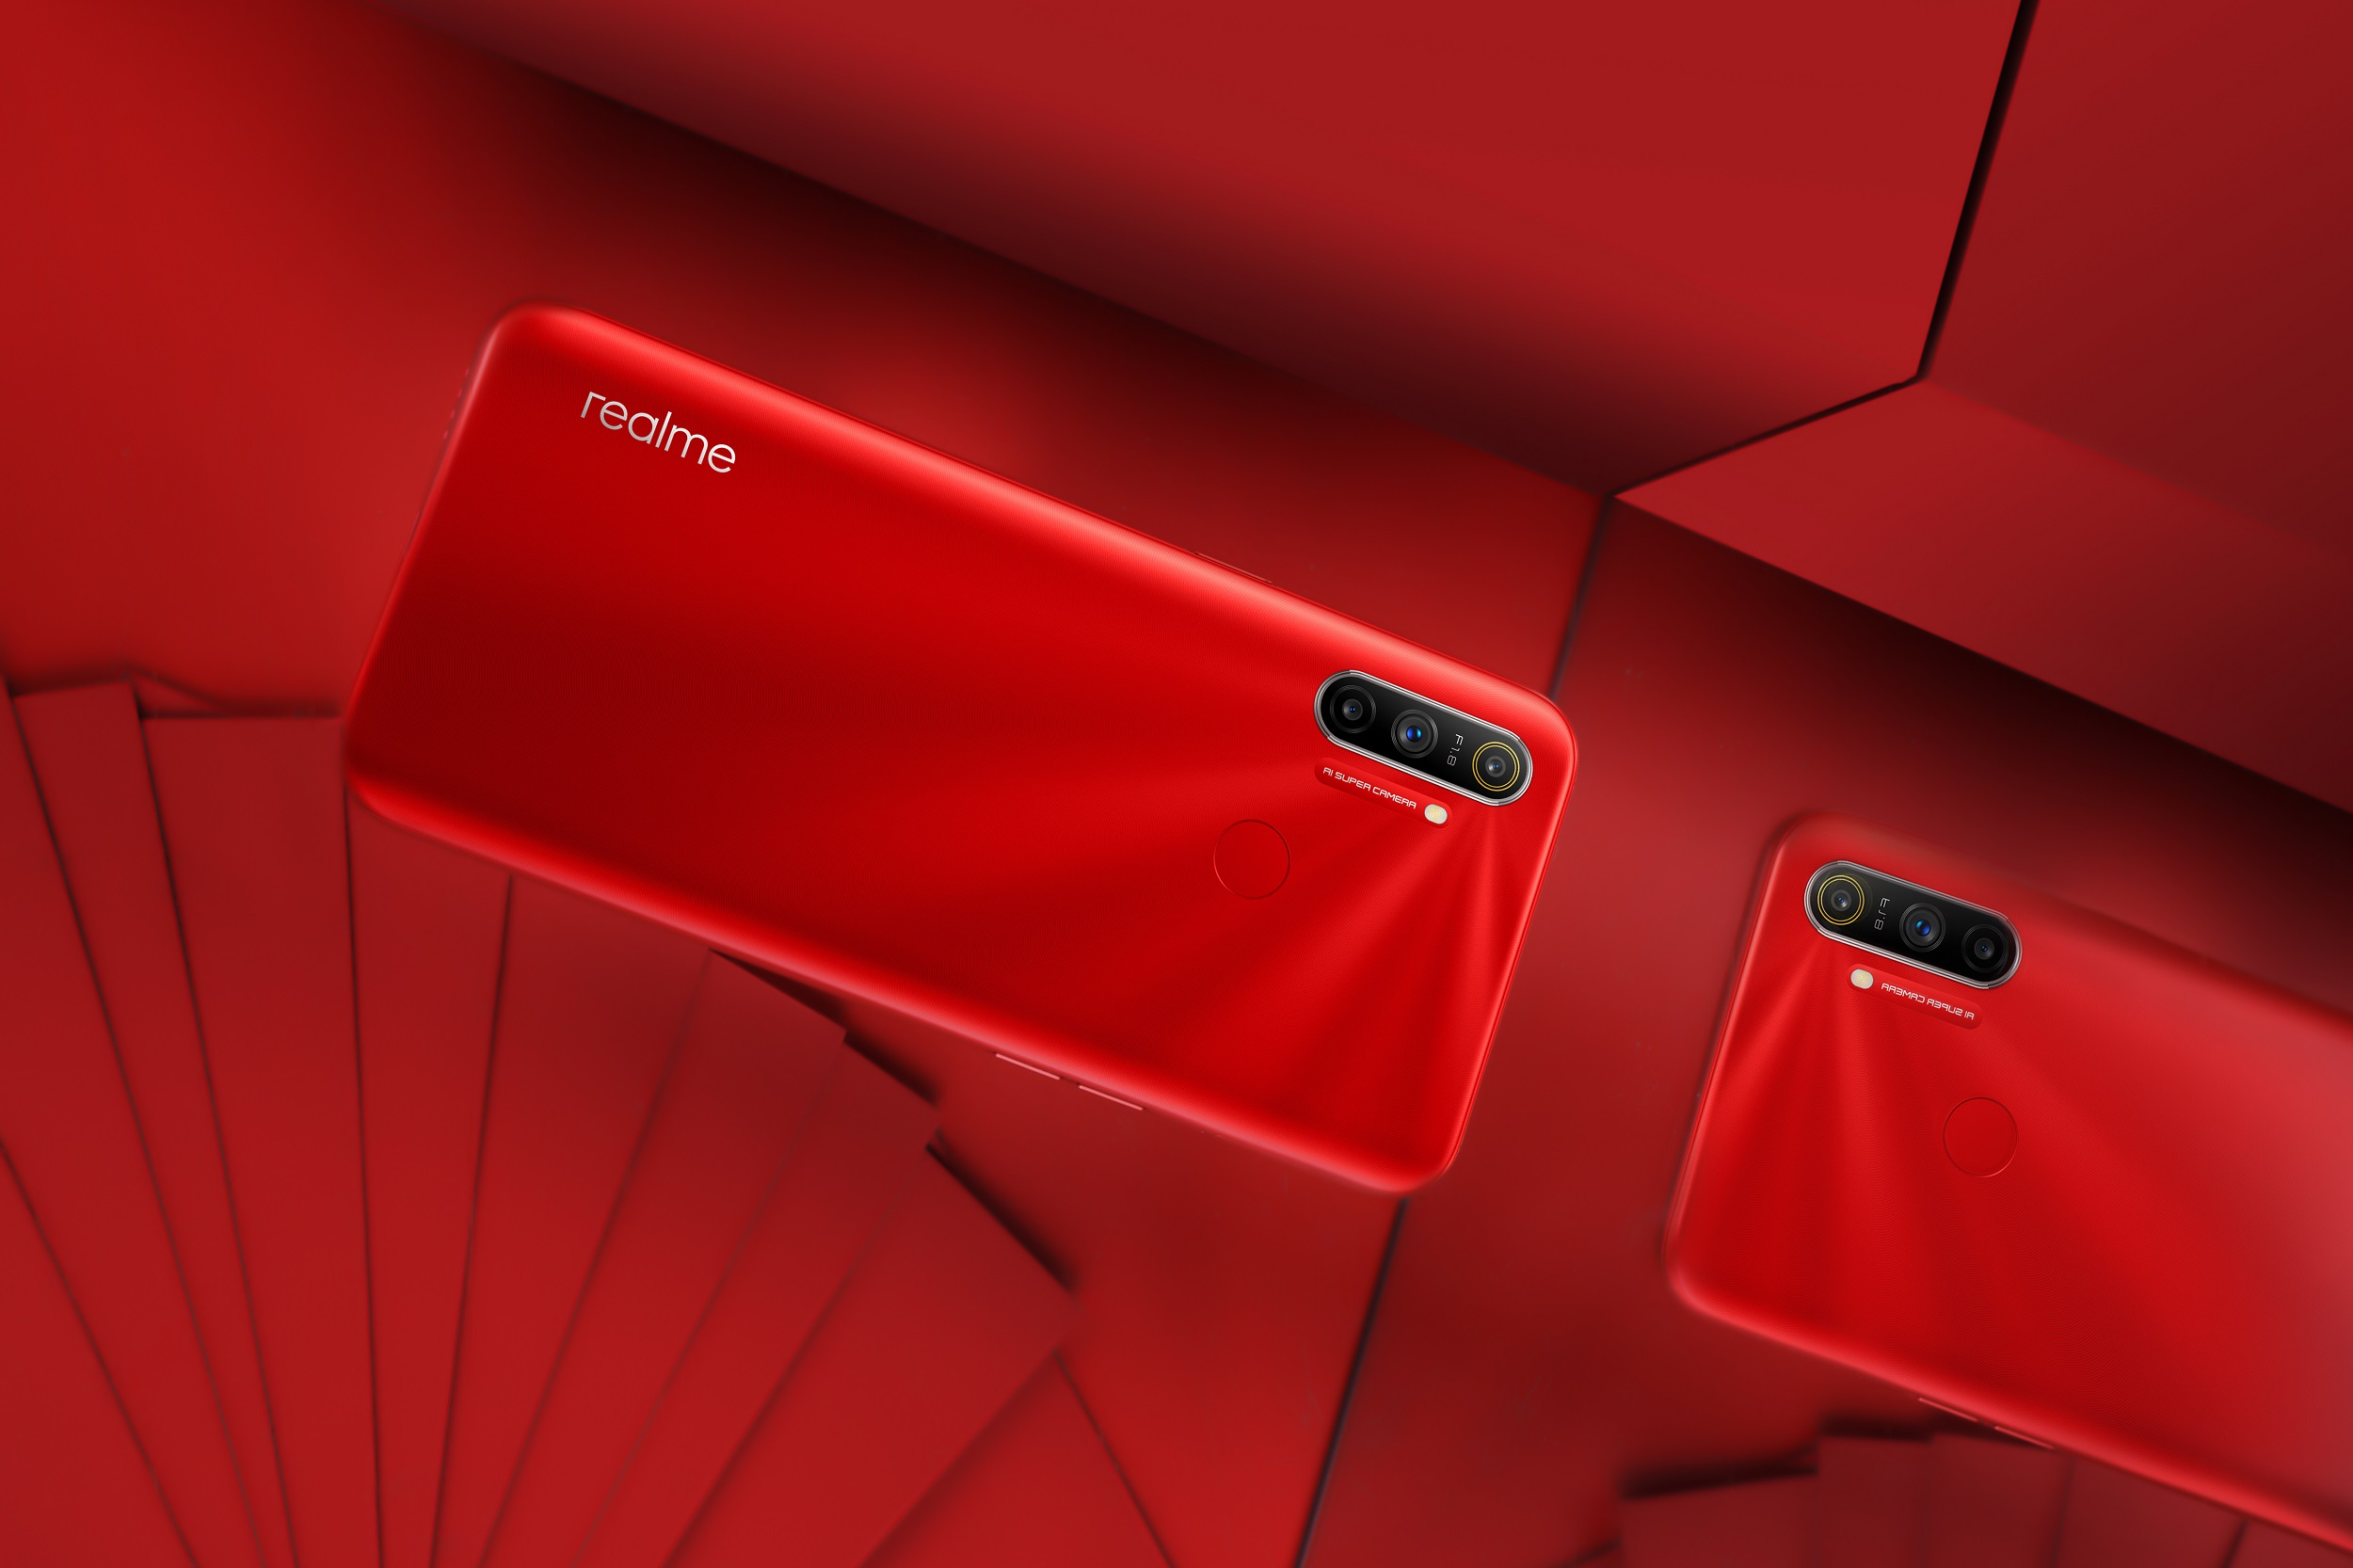 Chatterers Review: Realme Just Launched the Gaming Monsters Realme C3 and Realme 6i